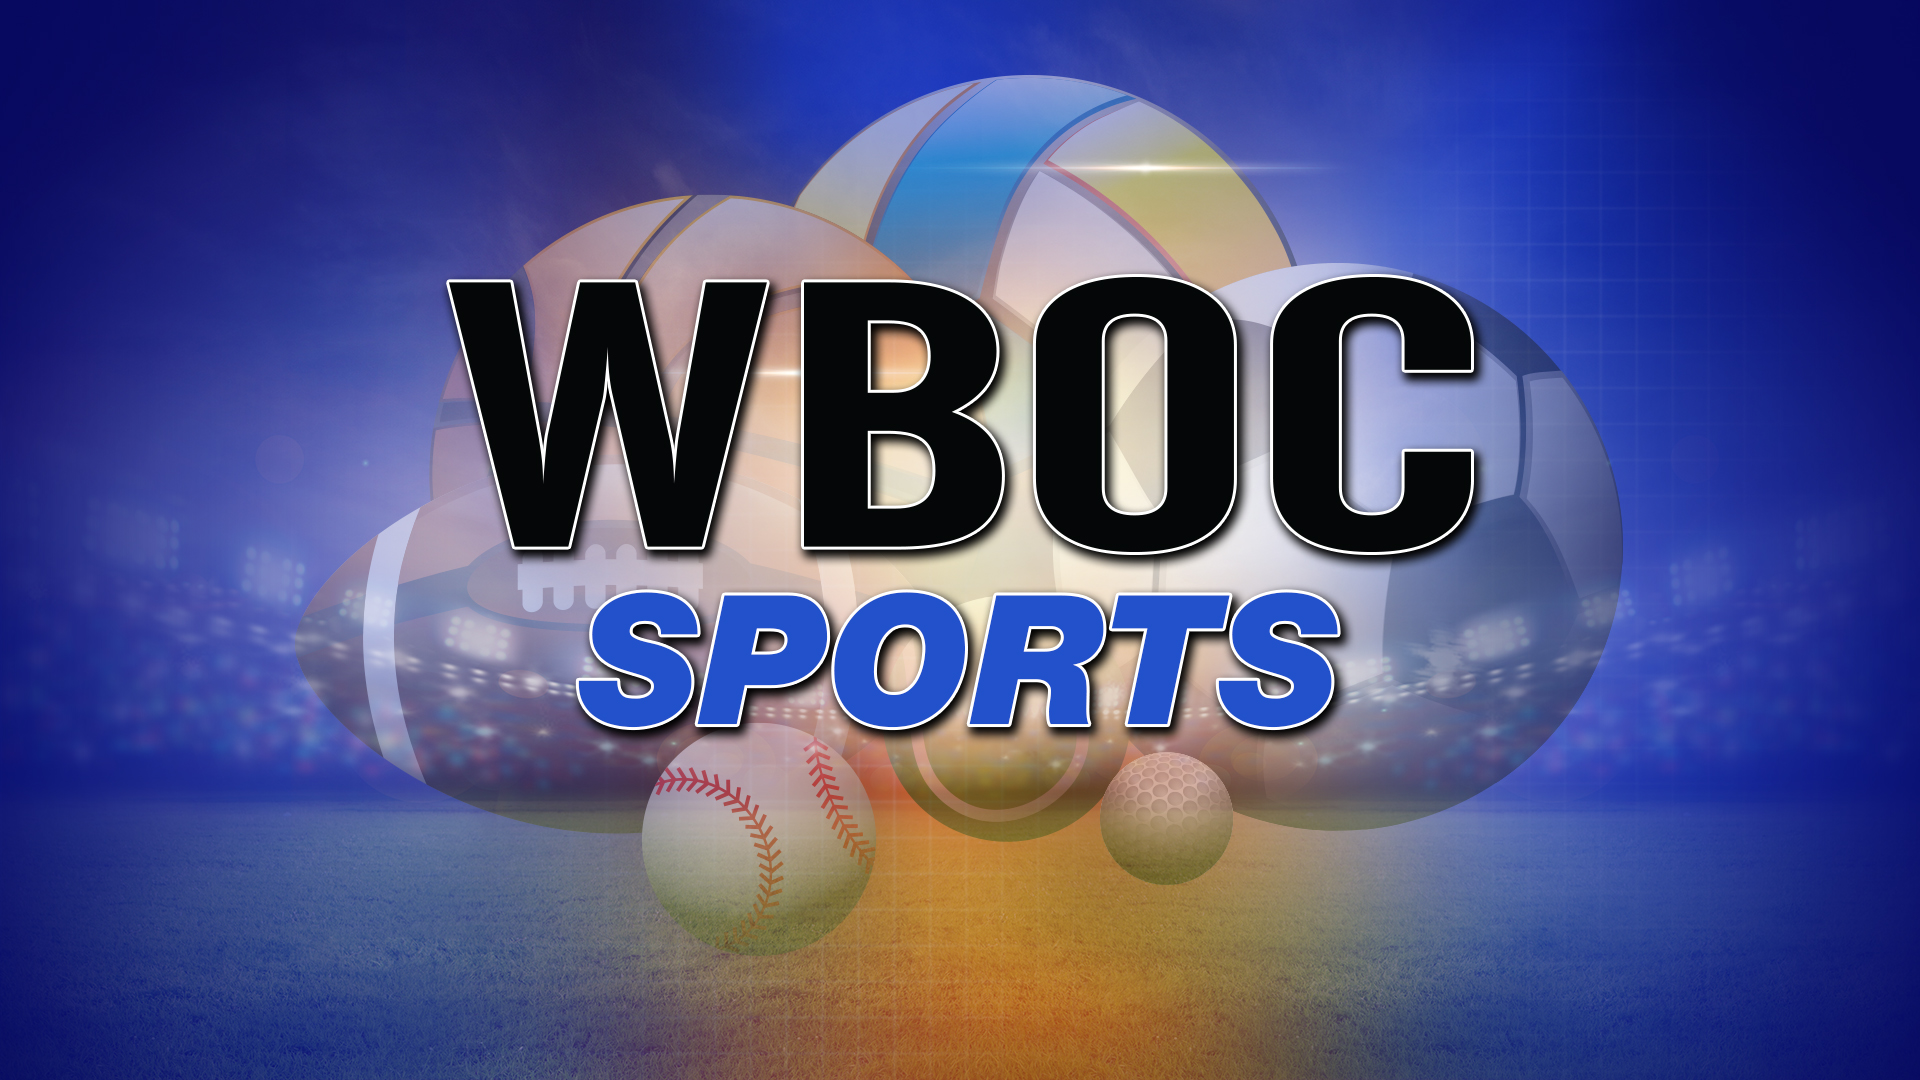 WBOC Sports Report: Thursday, November 5, 2015